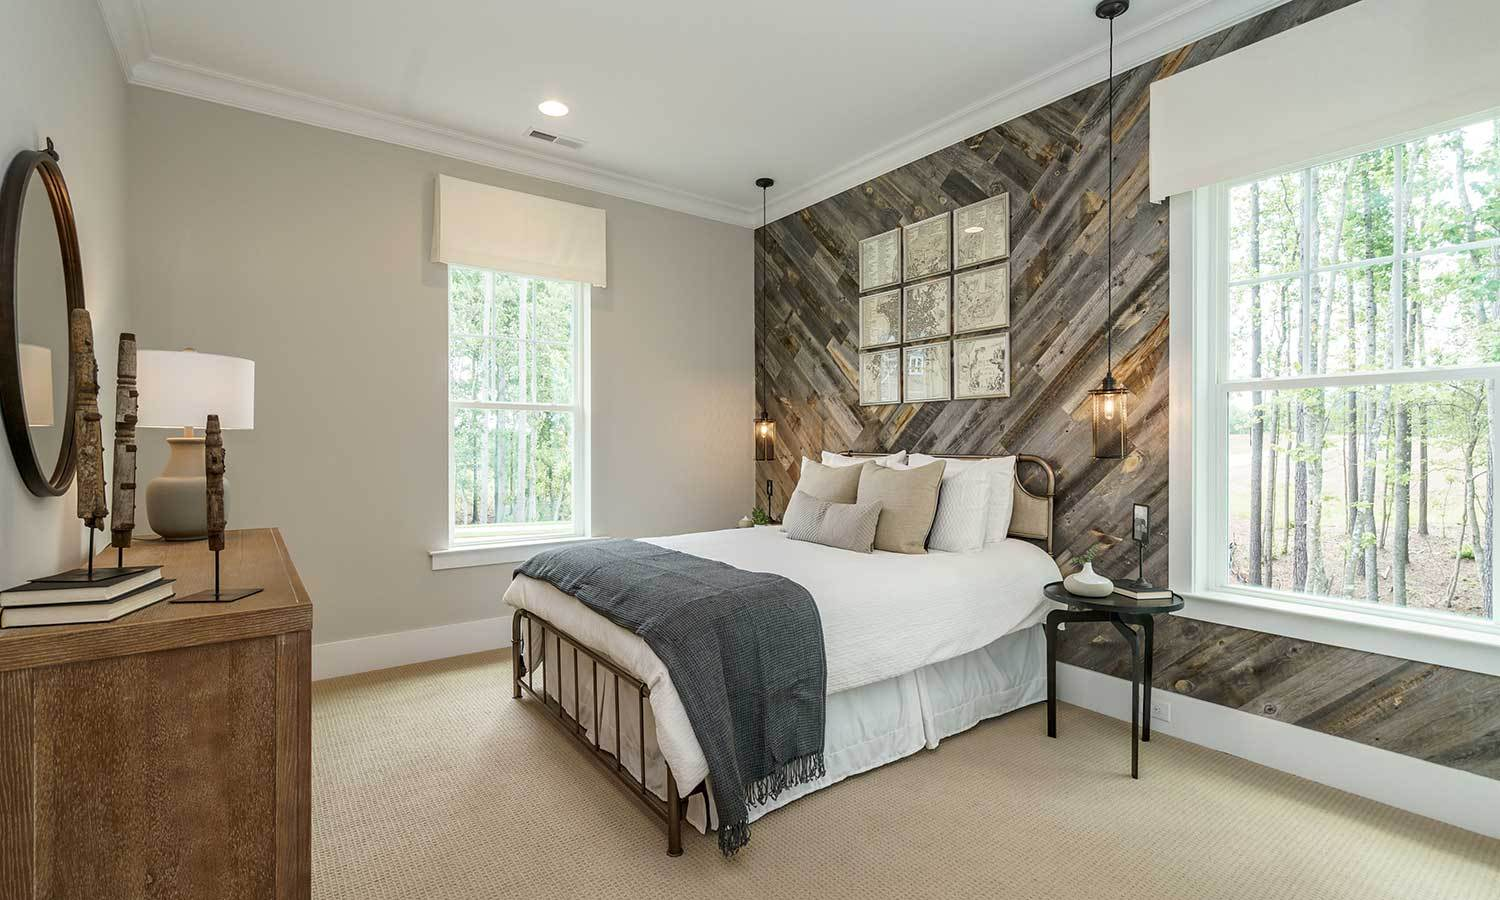 Bedroom featured in The Adventurer By Elevate Homes in Raleigh-Durham-Chapel Hill, NC